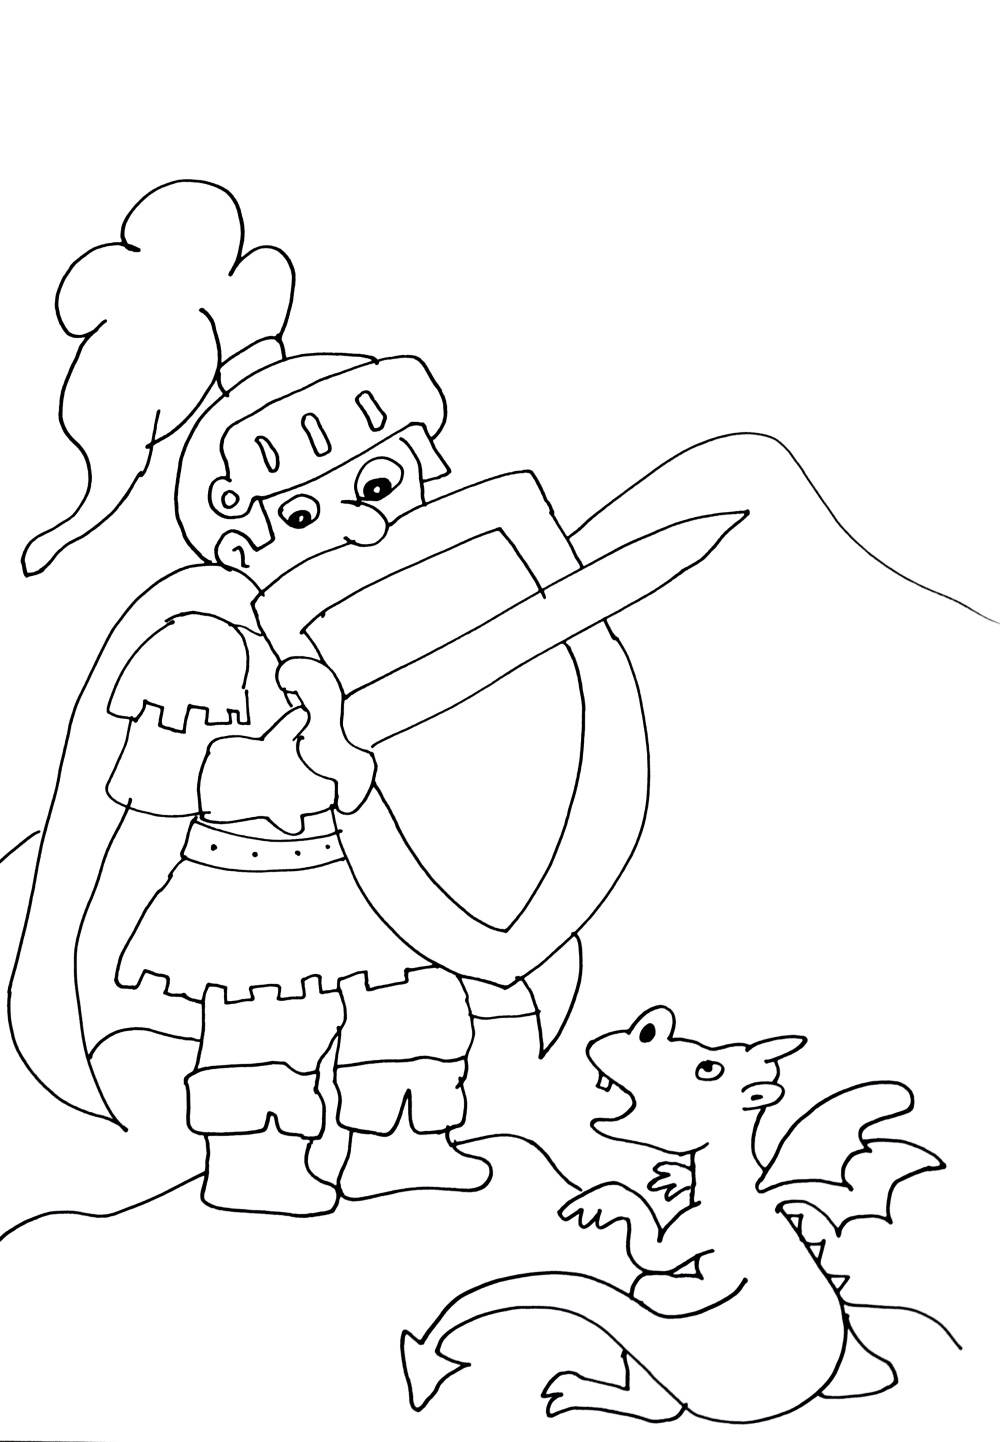 Chevaliers dragons 5 coloriage chevaliers et de dragons coloriages pour enfants - Chevalier a colorier ...